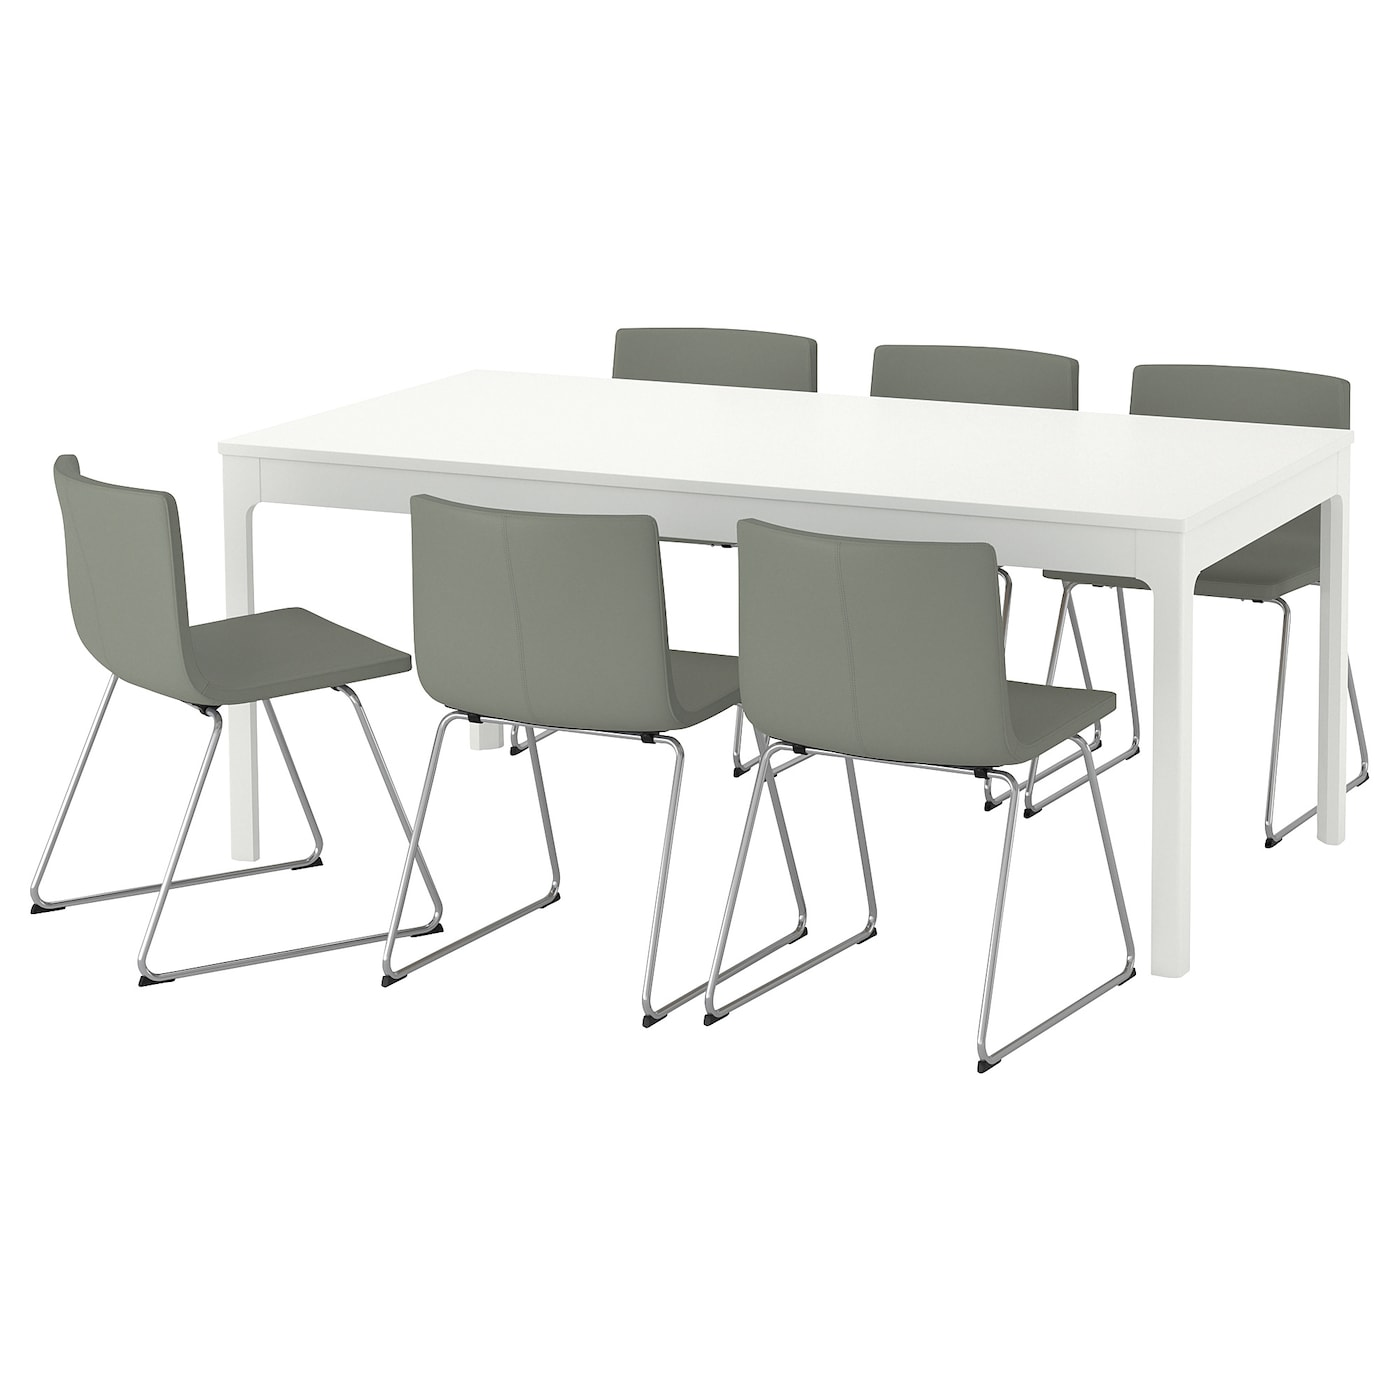 Ensembles tables et chaises max 6 pers ikea for Chaise ikea bernhard